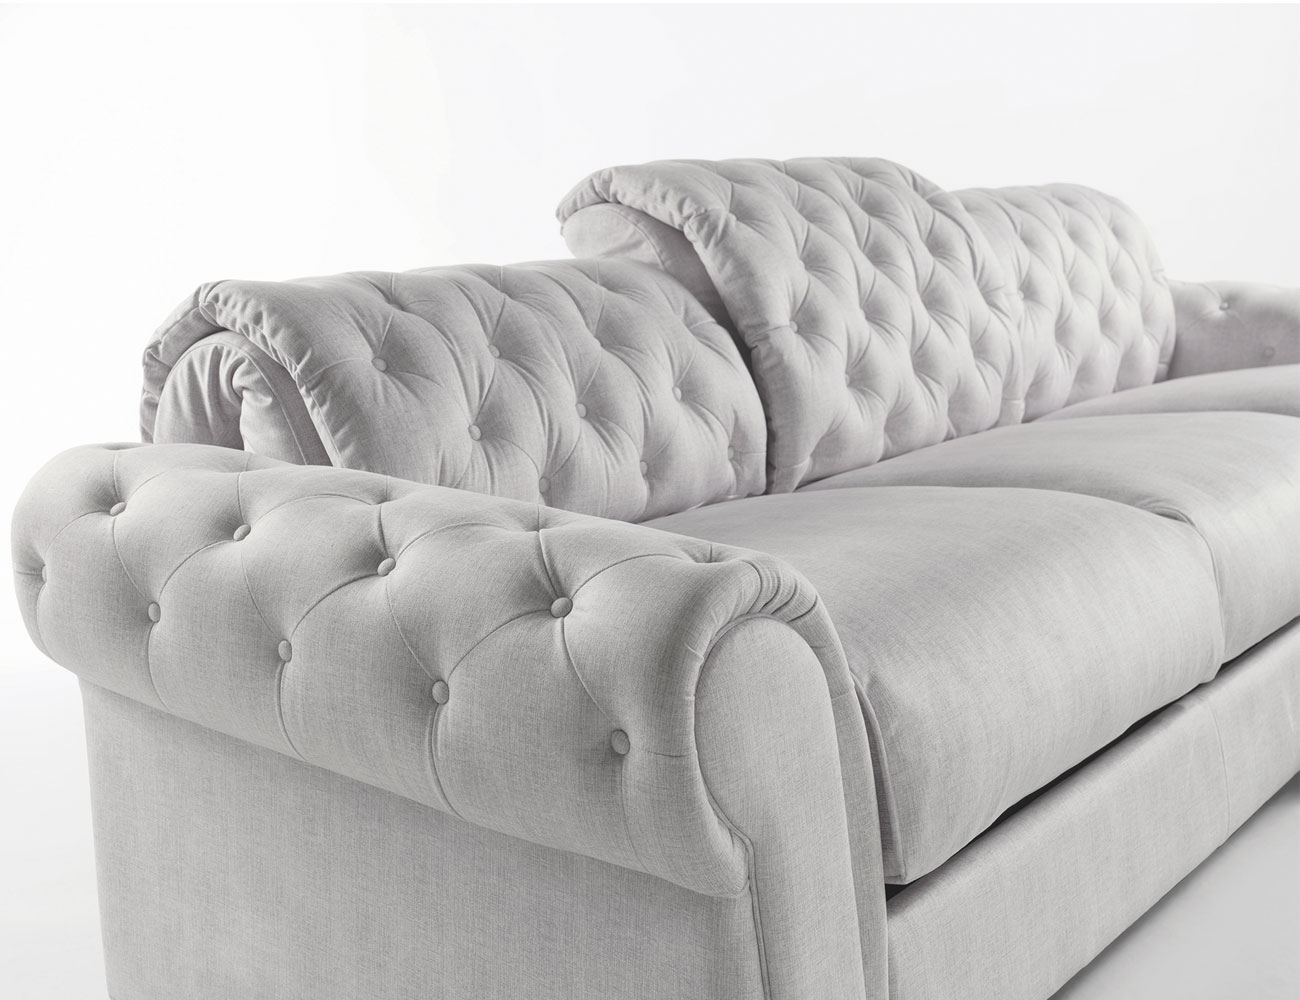 Sofa chaiselongue gran lujo decorativo capitone blanco tela 151